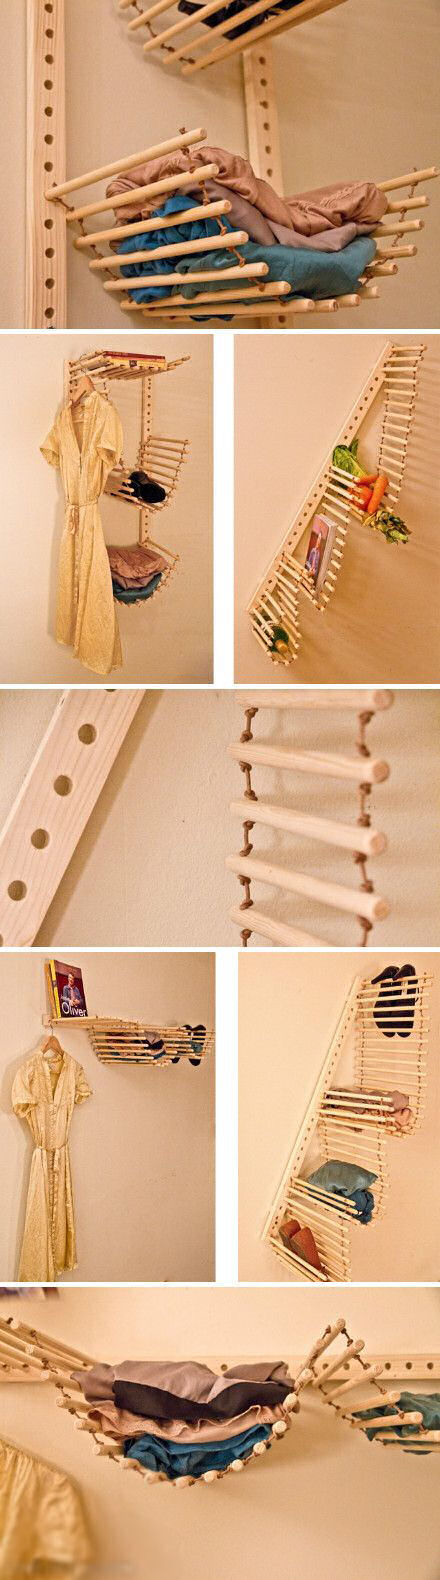 Diy Room Organization Part - 50: Diy Room Organization